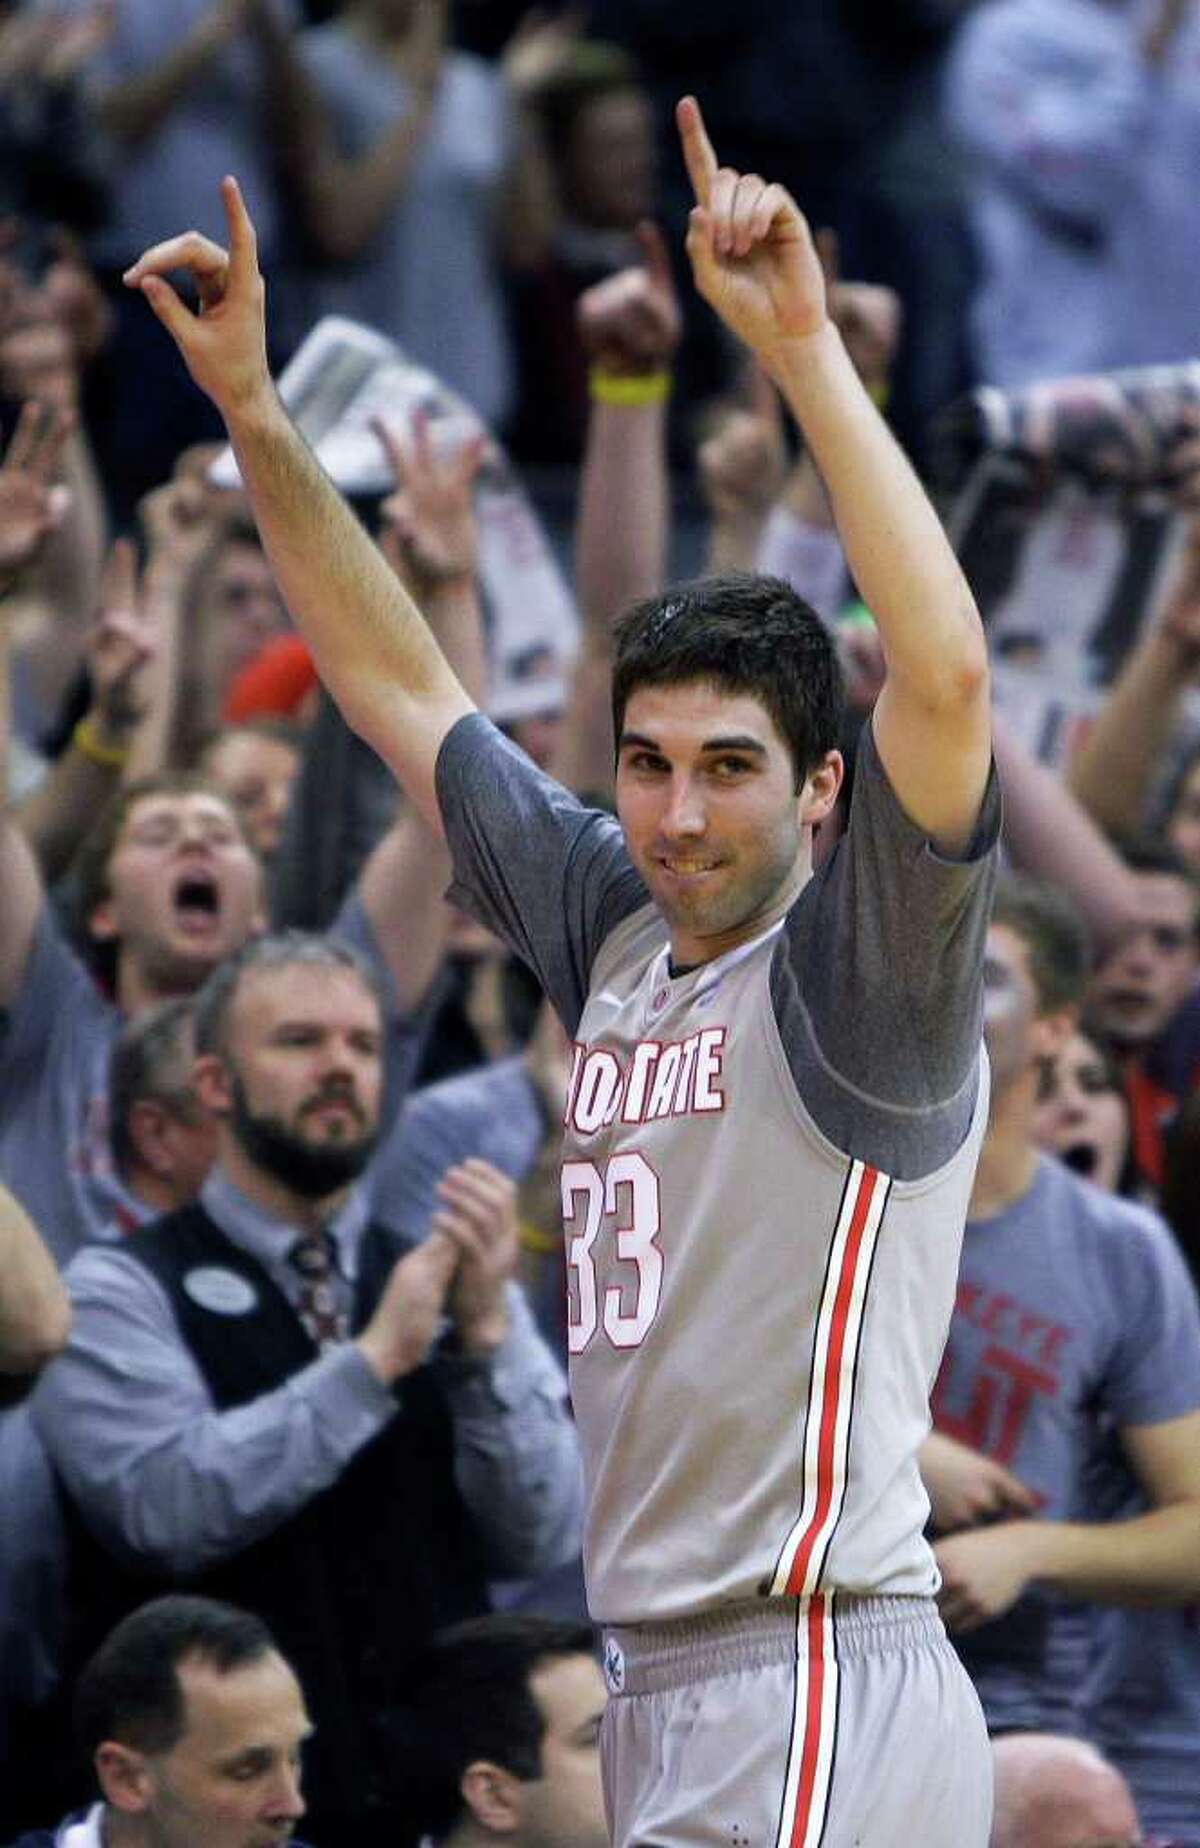 Ohio State's Jon Diebler celebrates after Ohio State defeated Wisconsin 93-65 in an NCAA college basketball game Sunday, March 6, 2011, in Columbus, Ohio. (AP Photo/Jay LaPrete)